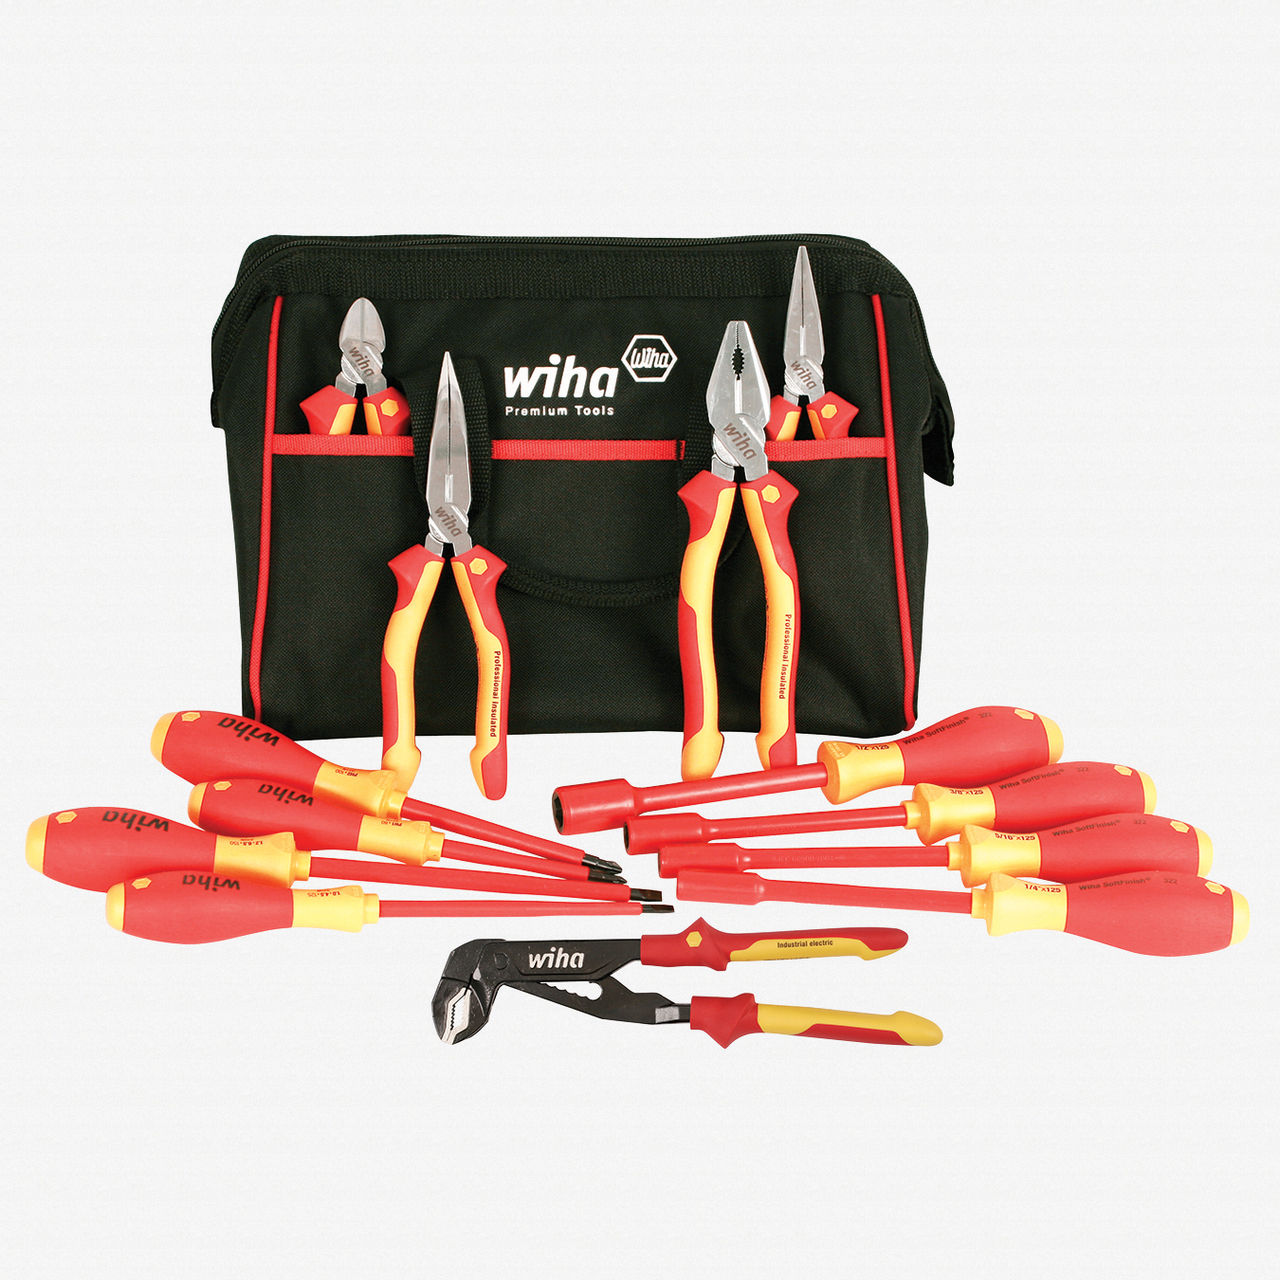 Wiha 32894 13 Piece Insulated Pliers/Cutters/Driver/Nut Driver Tool Box - KC Tool